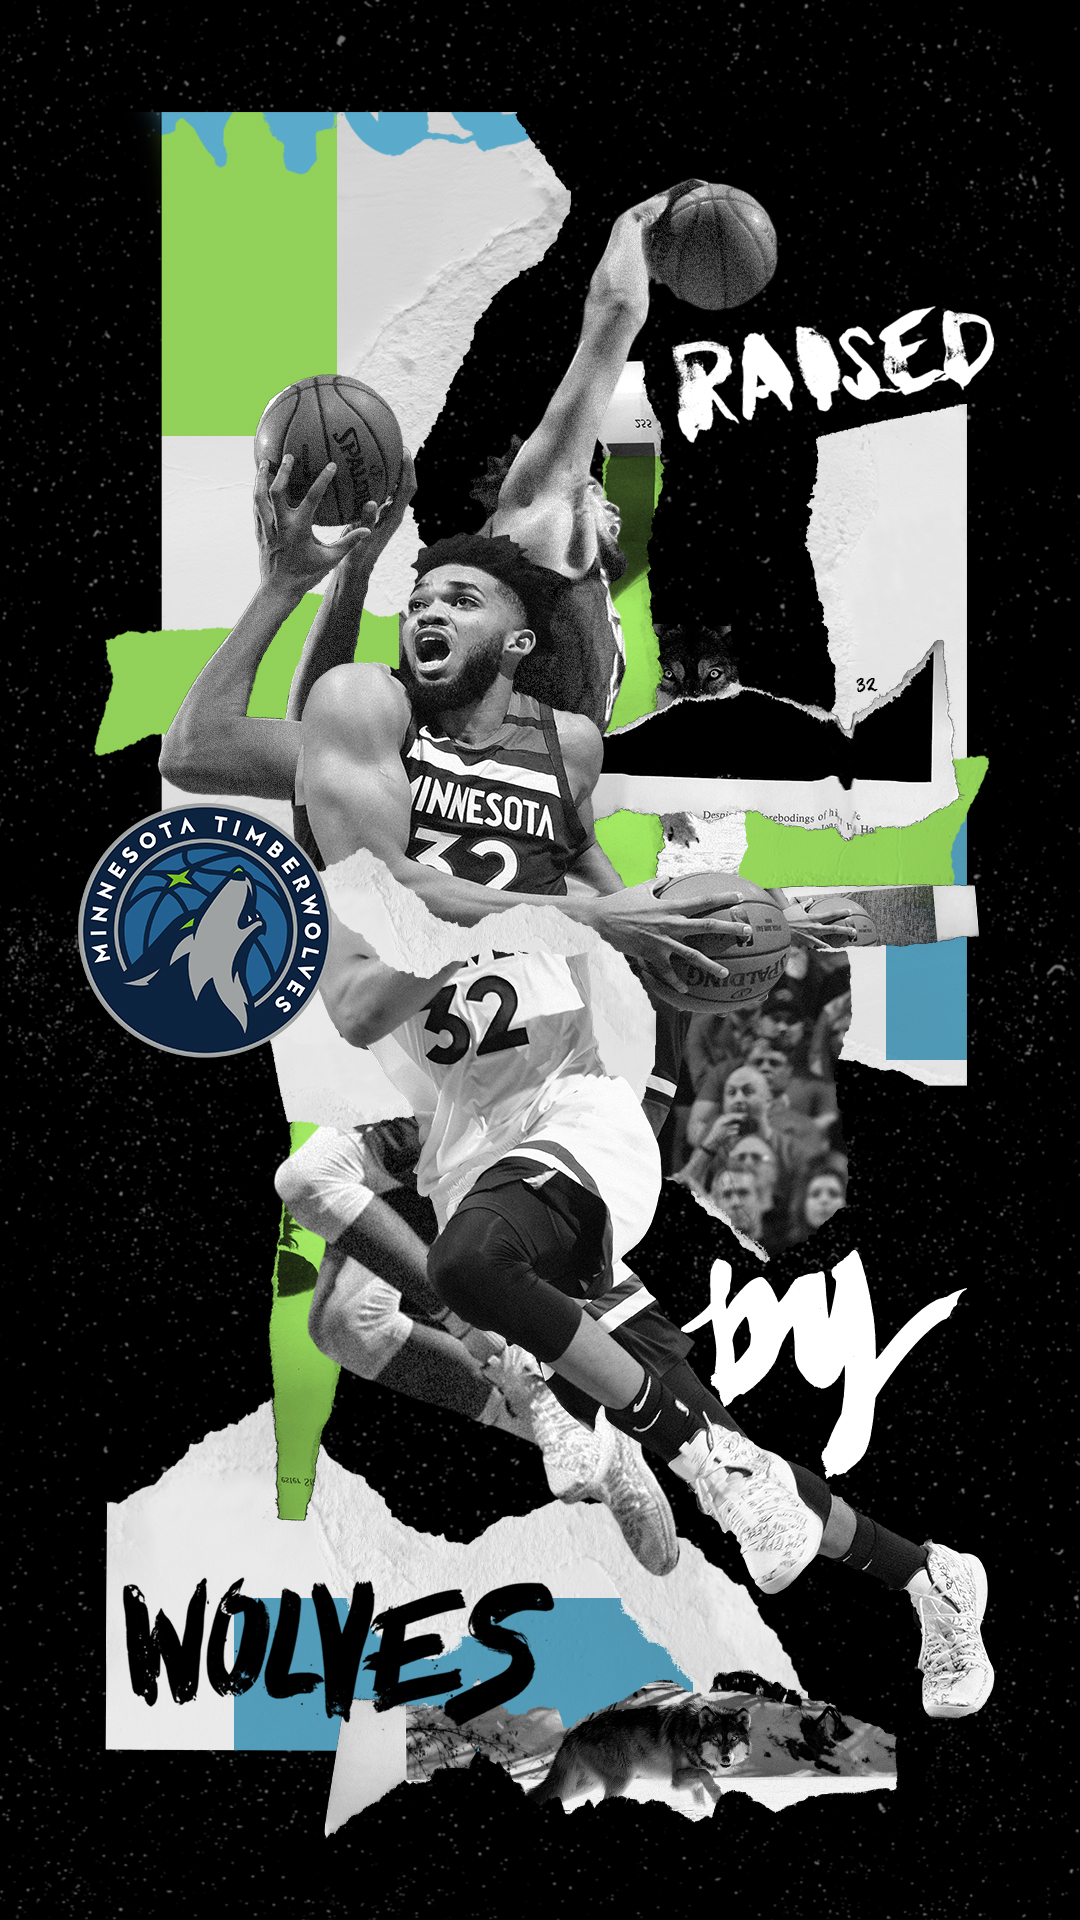 Minnesota Timberwolves Raised by Wolves Poster with Karl Anthony Townes